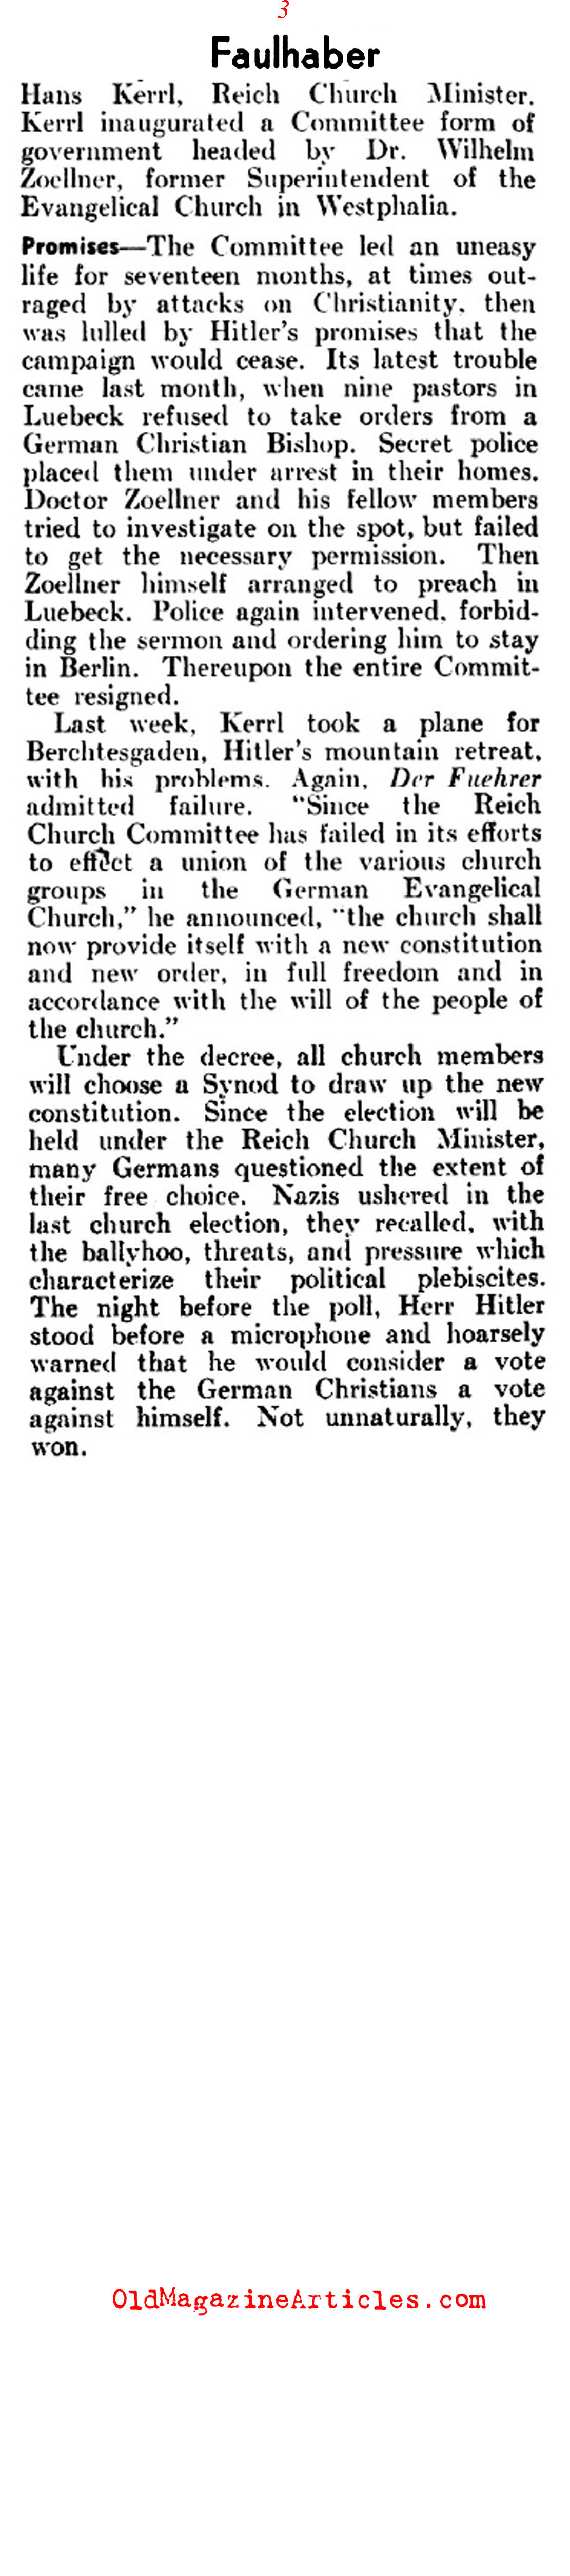 Catholic Hierarchy Pressured in 1930s Germany  (Literary Digest, 1937)